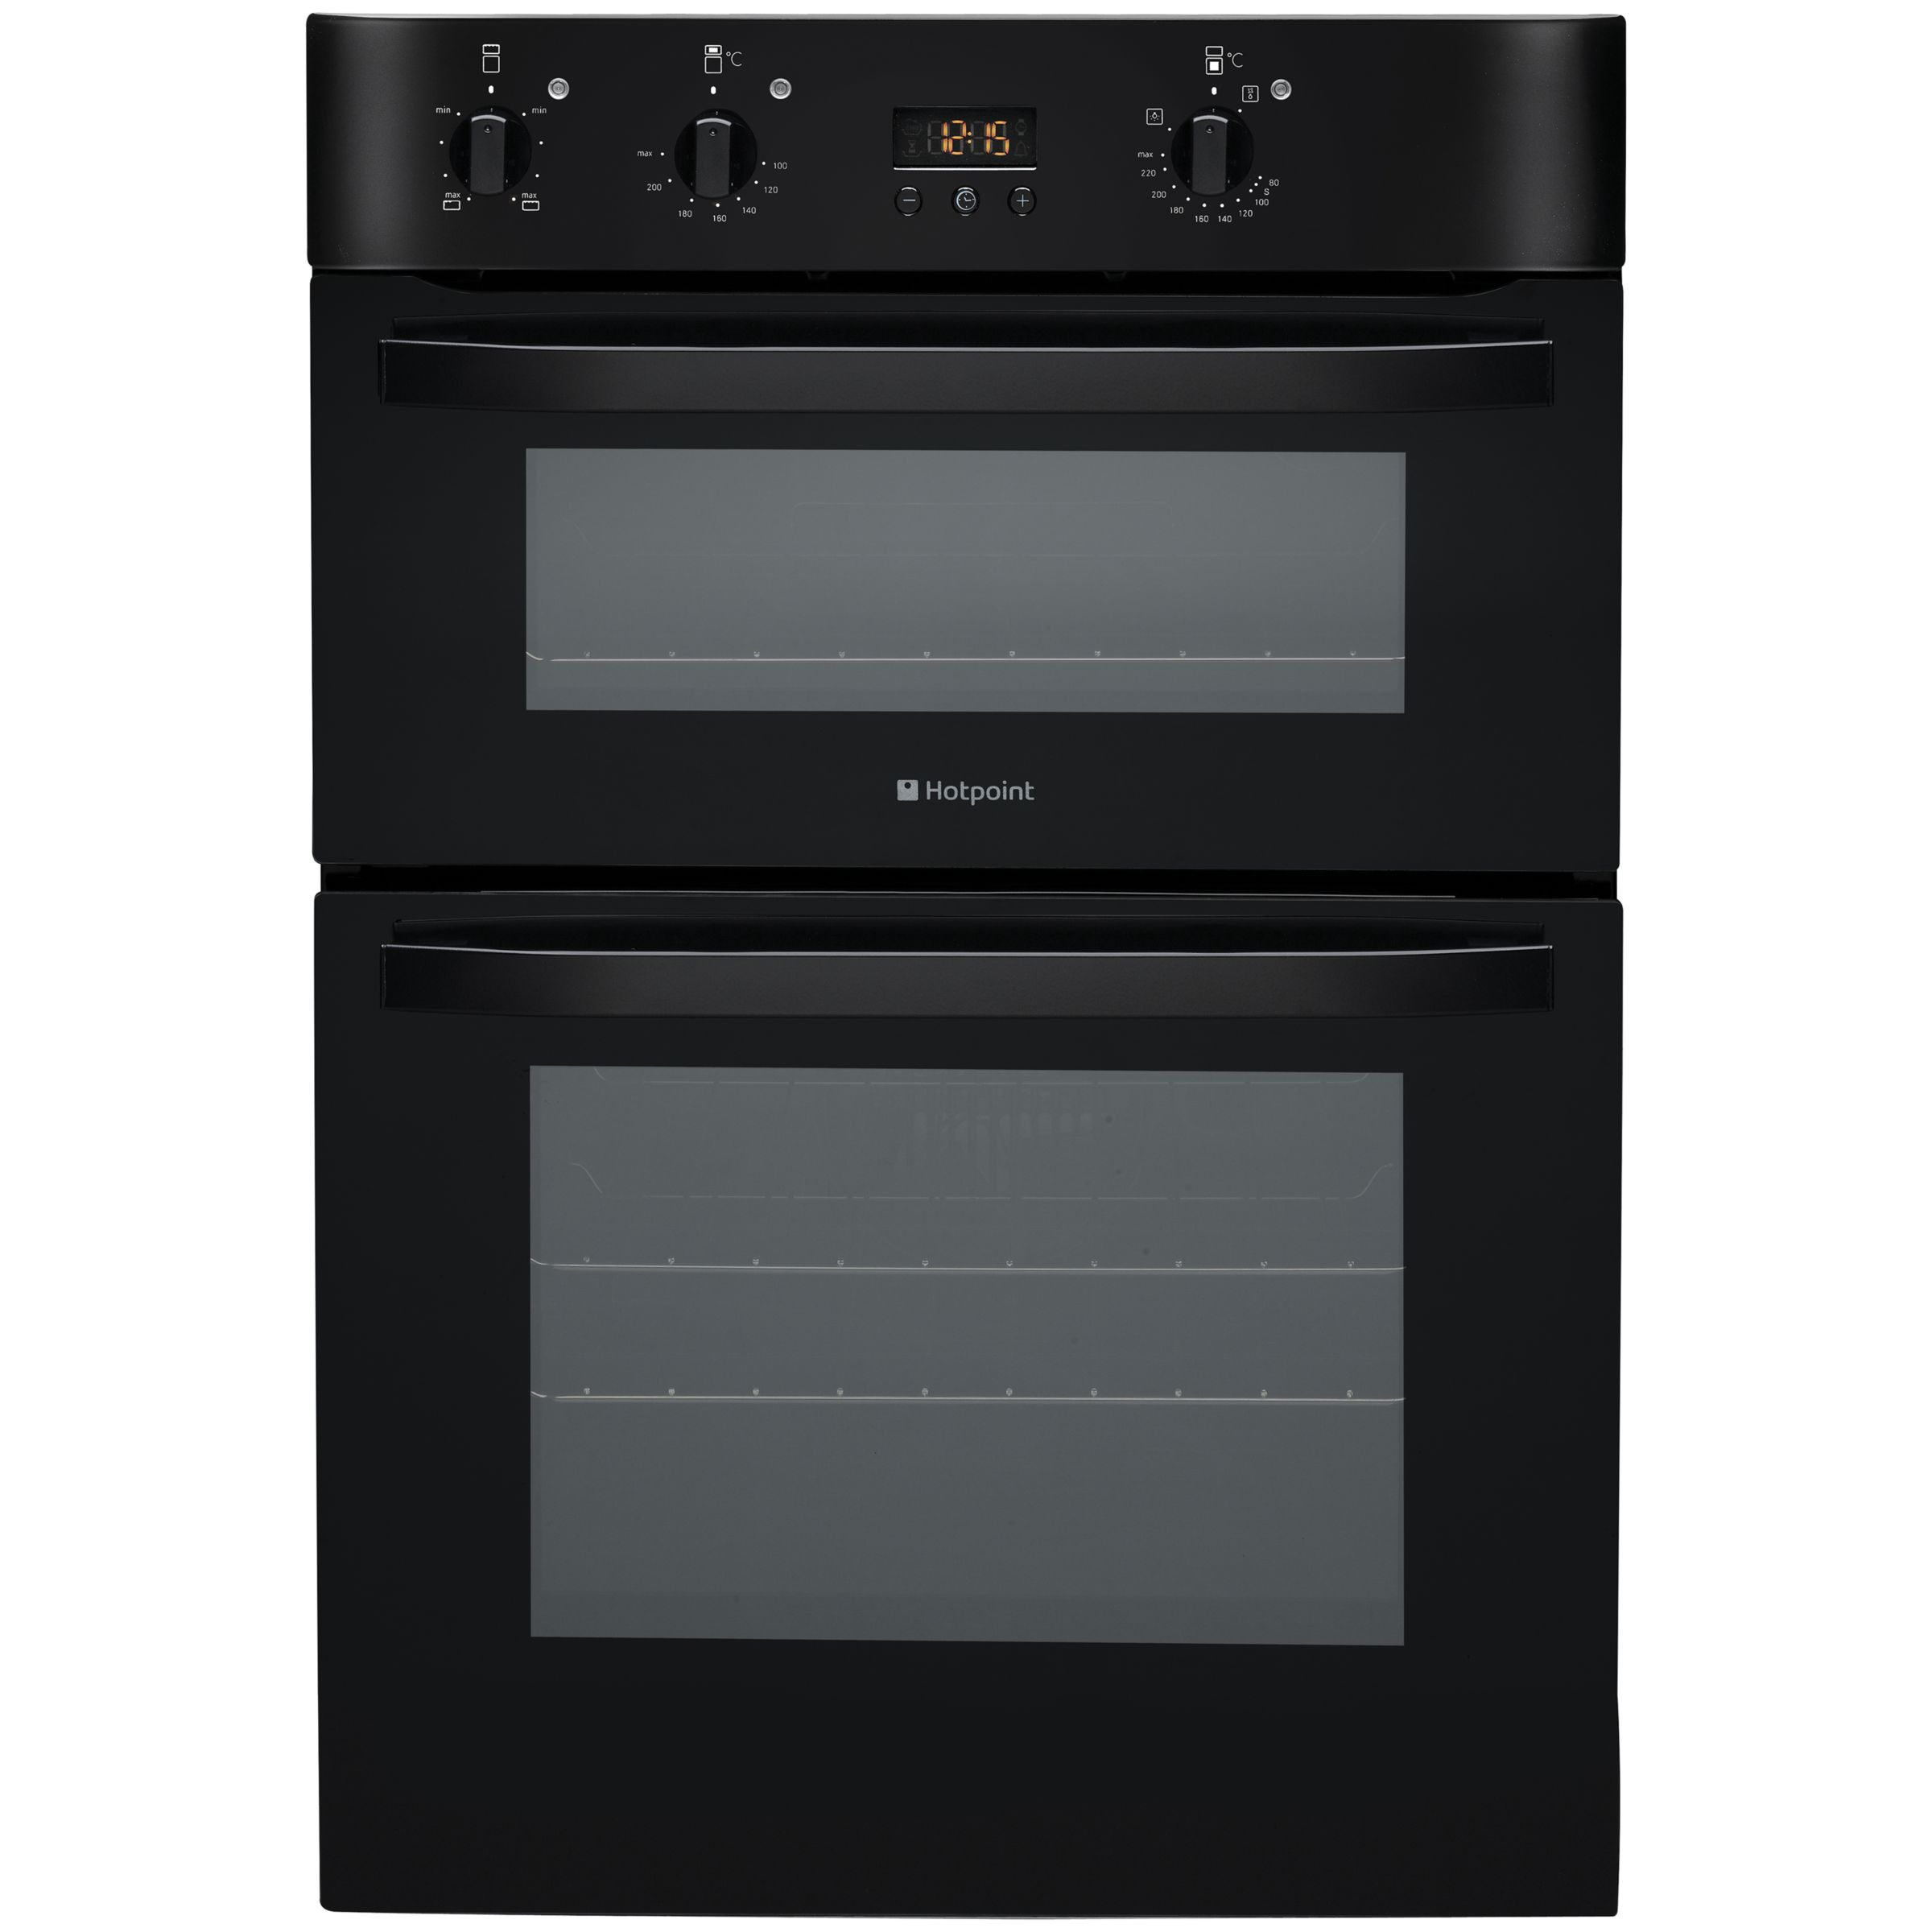 Hotpoint DH53CKS Double Electric Oven Black